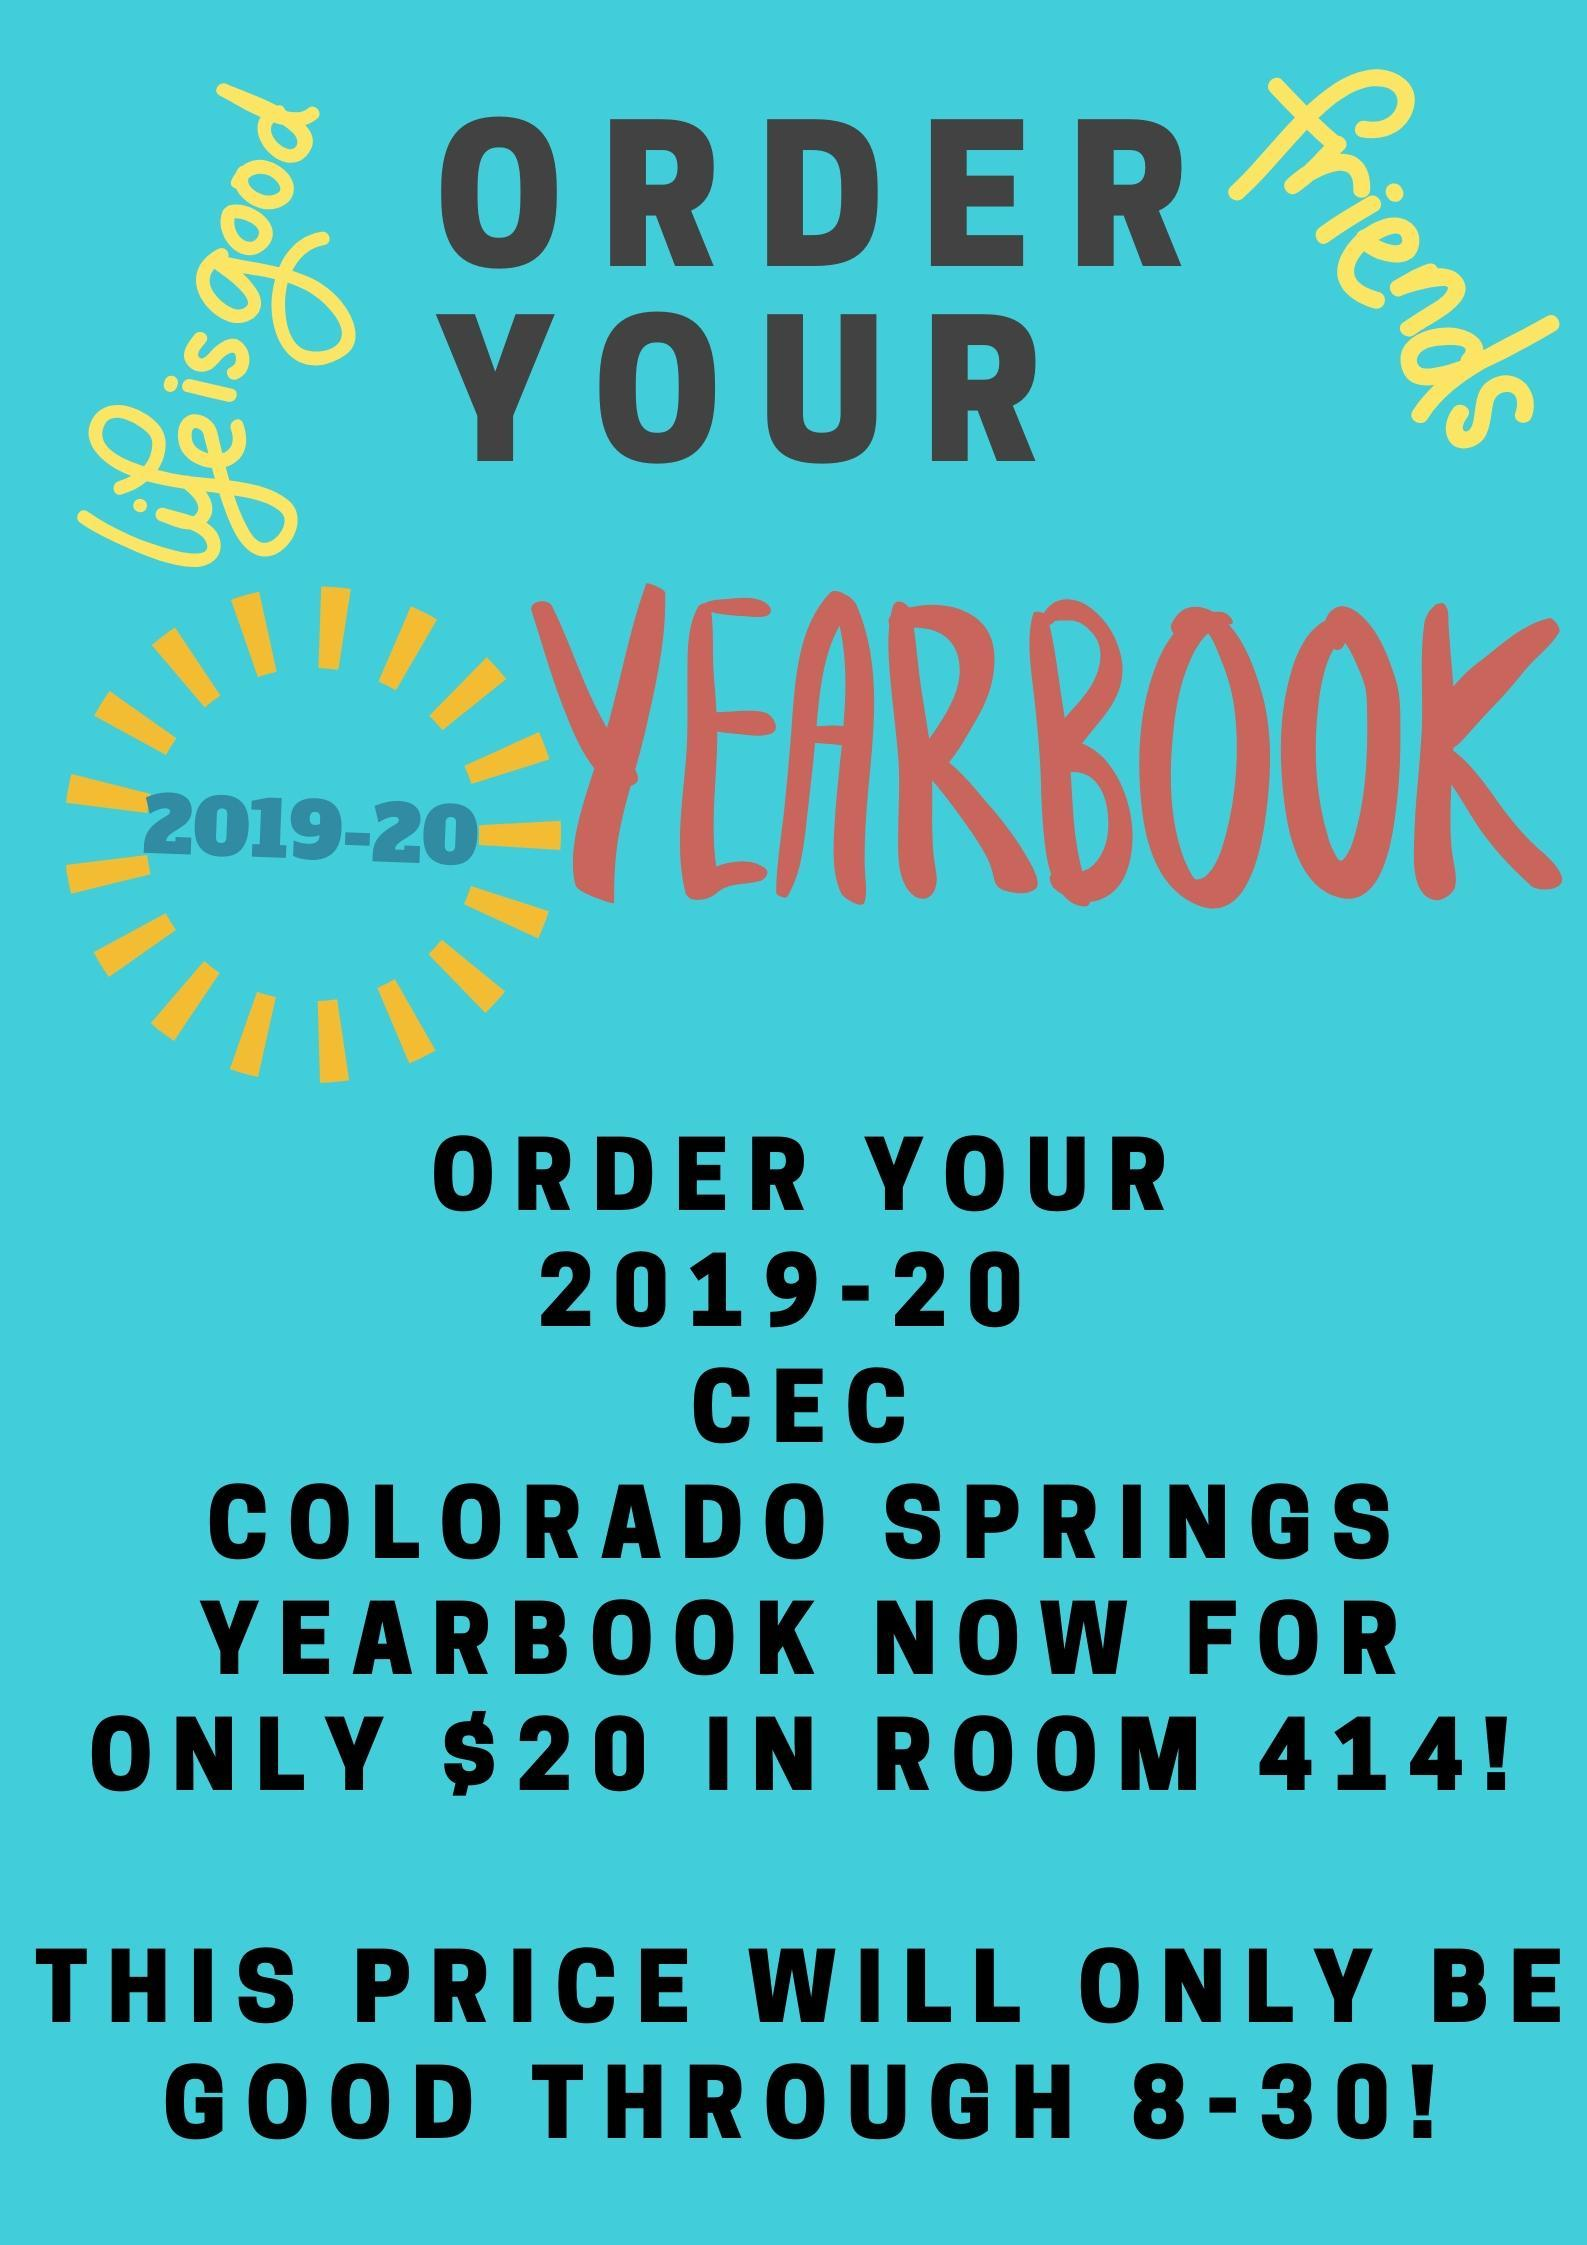 Poster advertising Yearbook price of only $20